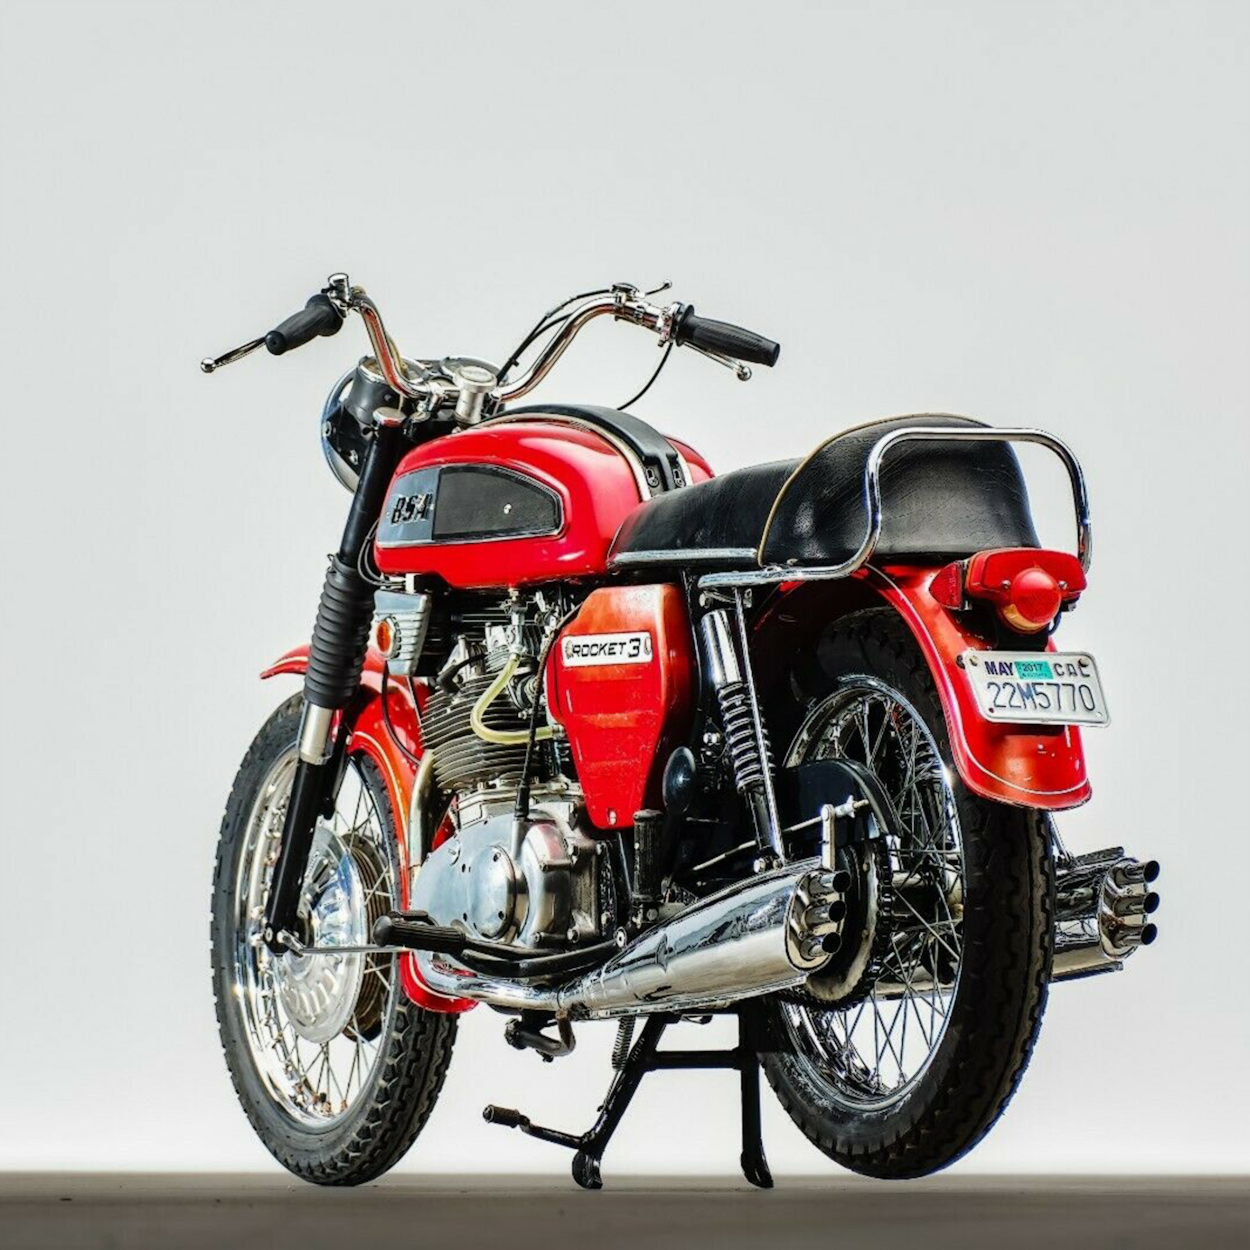 1969 BSA Rocket 3 for sale